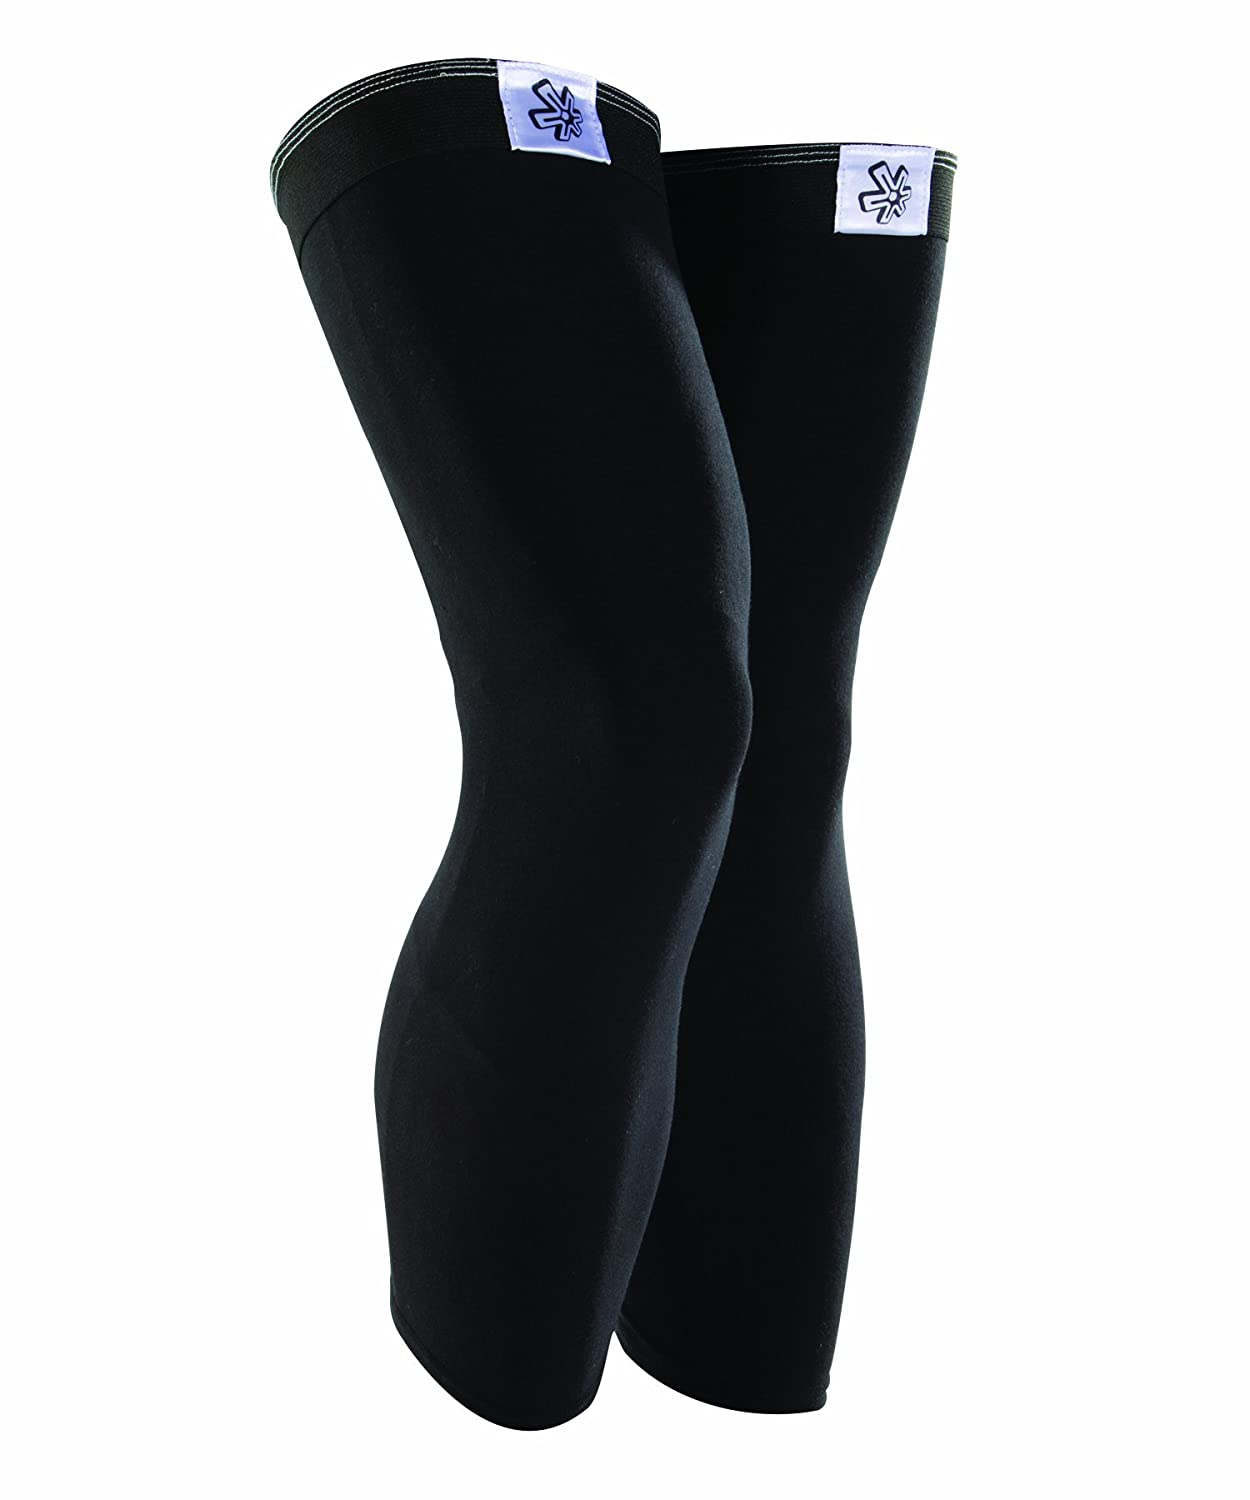 Asterisk Ultra CELL Banded Undersleeve (Black, Large) - Pair USP-L